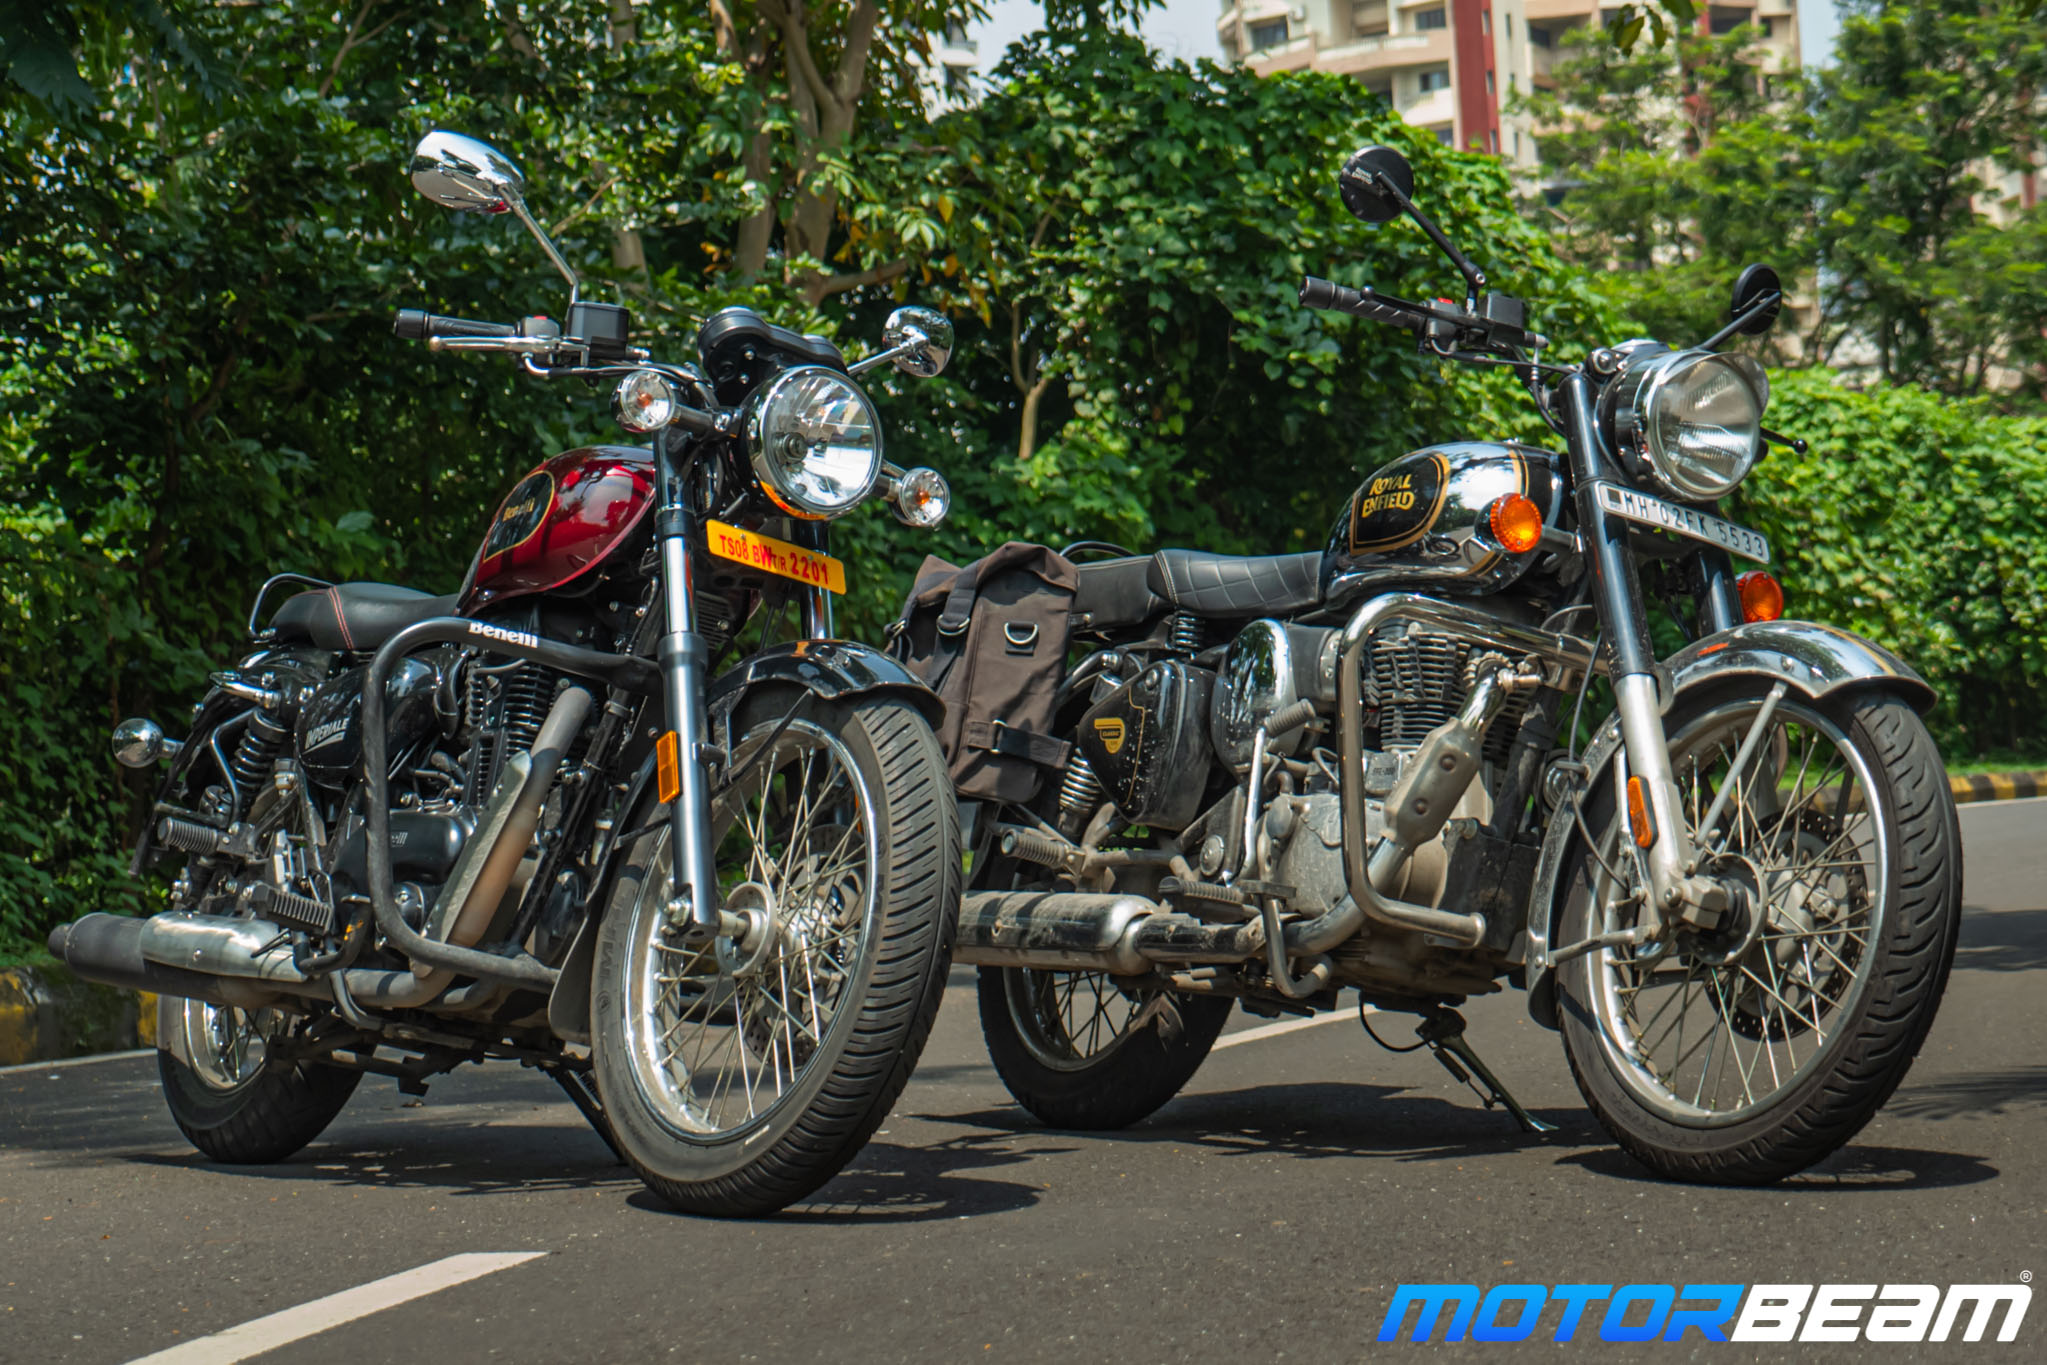 Benelli Imperiale 400 vs Royal Enfield Classic 350 Comparison Review 13